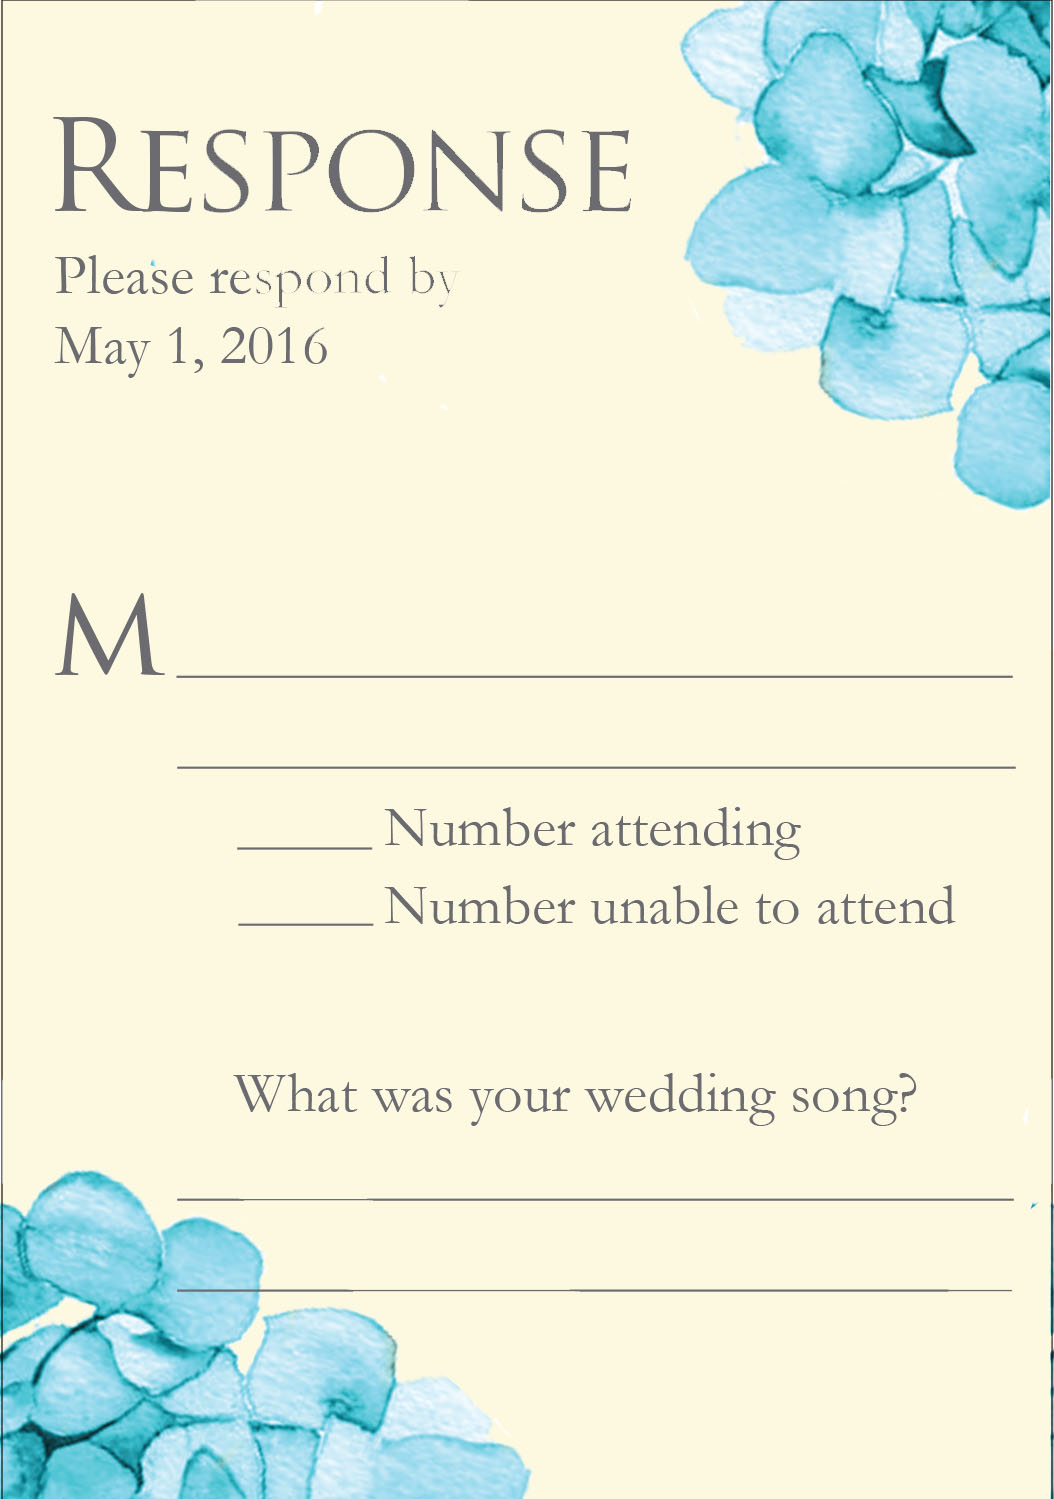 Heavenly Hydrangeas response card